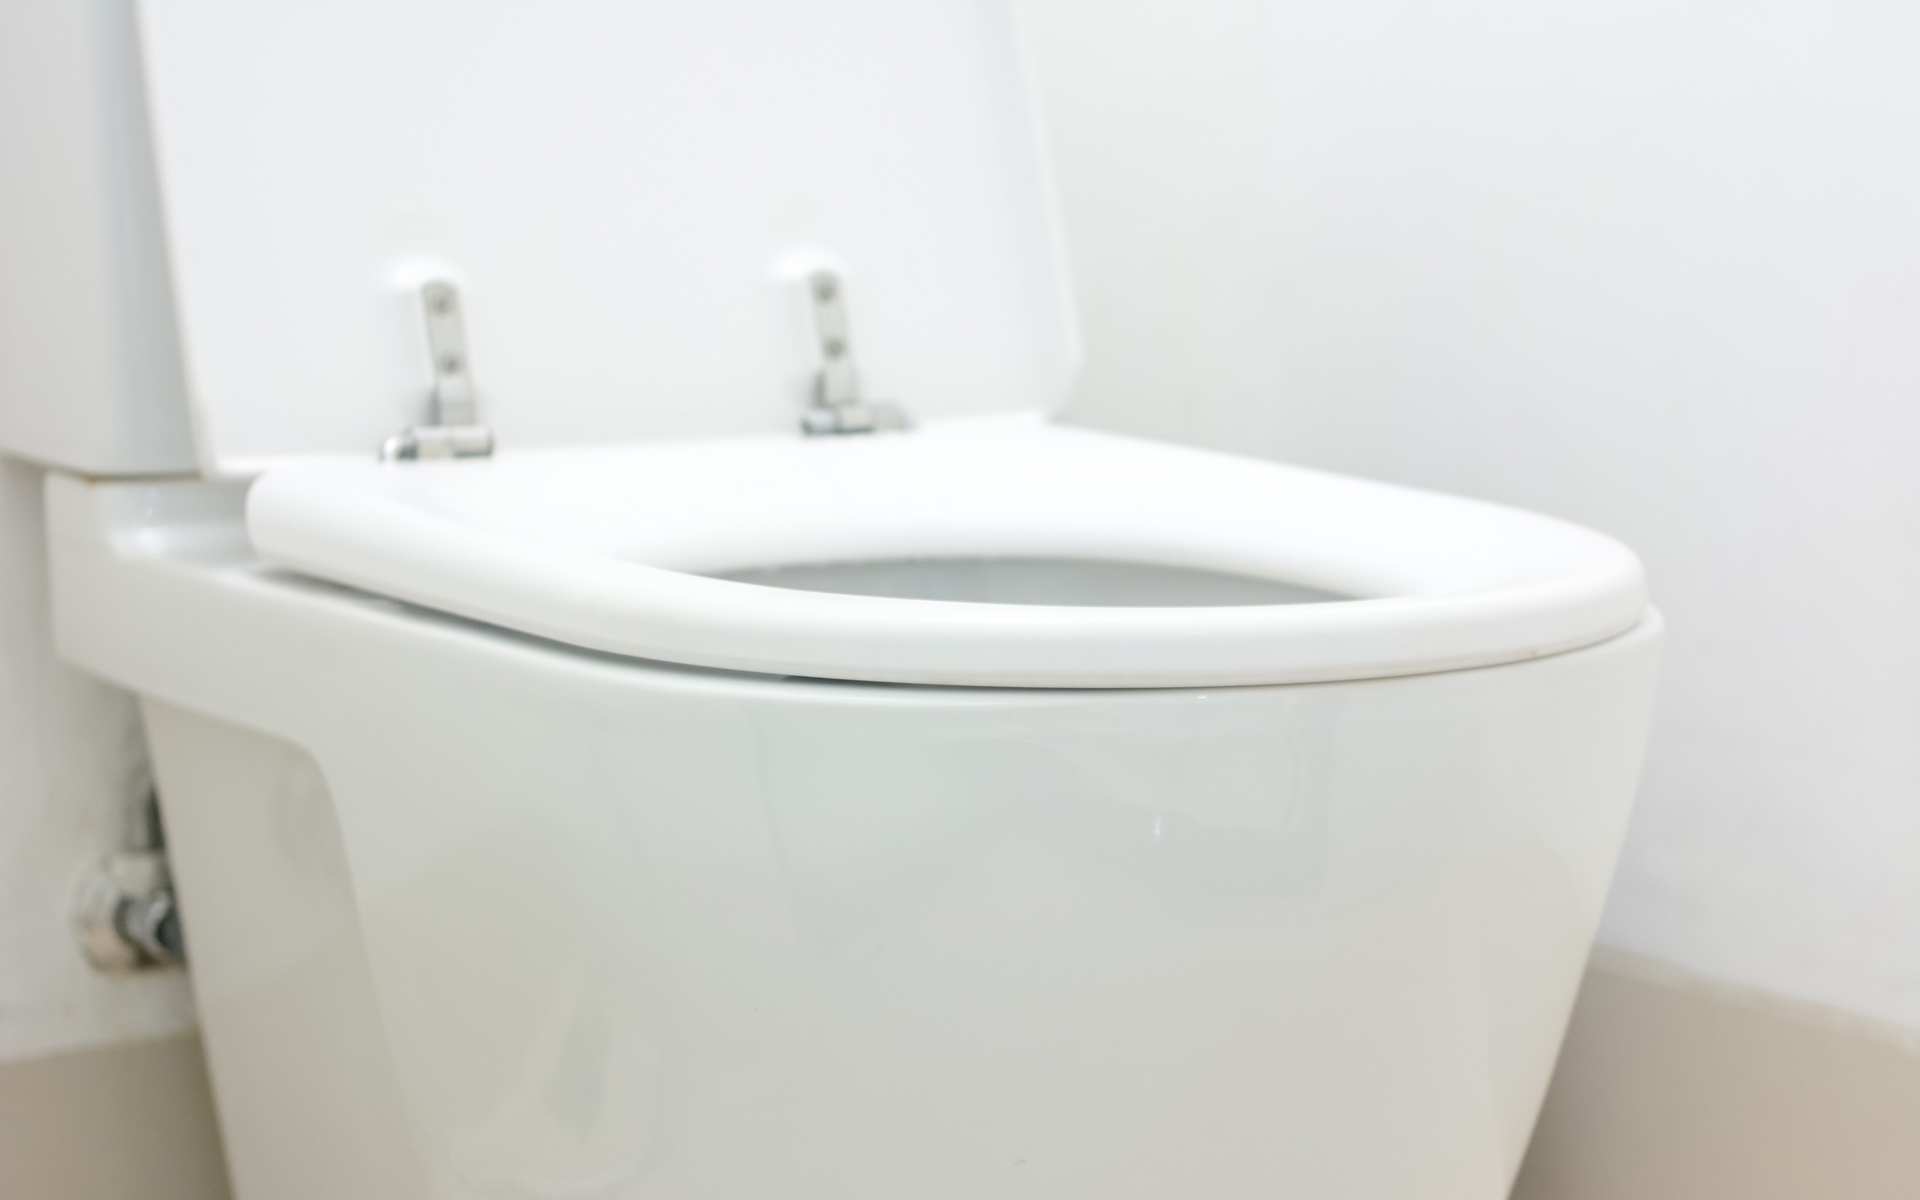 Beltsville Toilet Repair